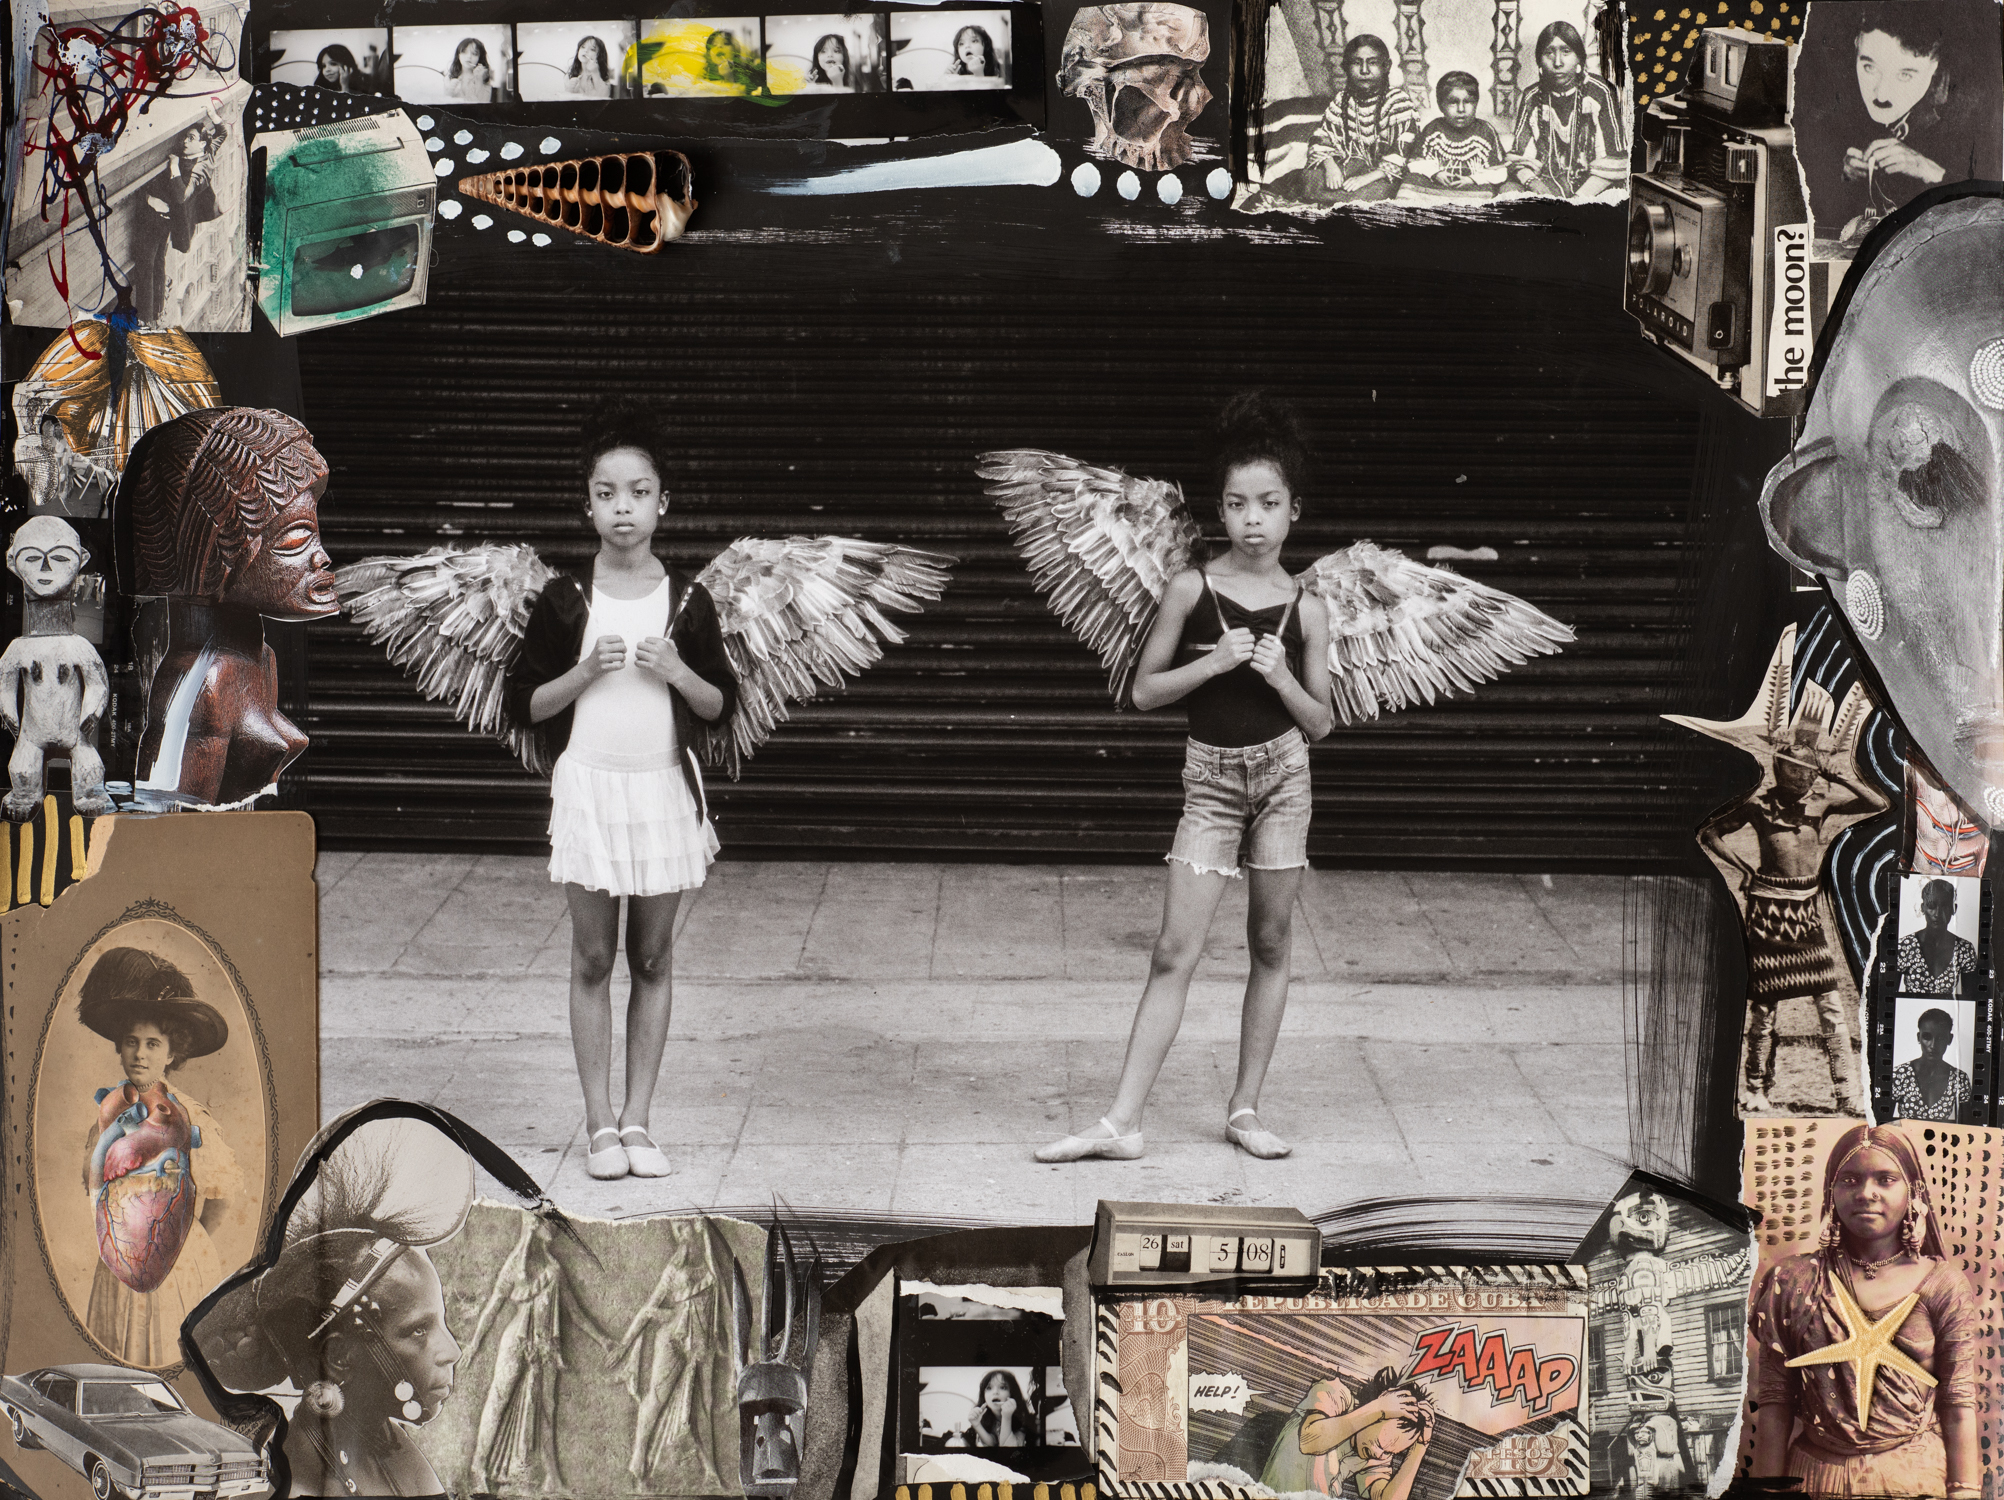 The Angels Twin 2015 by Delphine Diallo